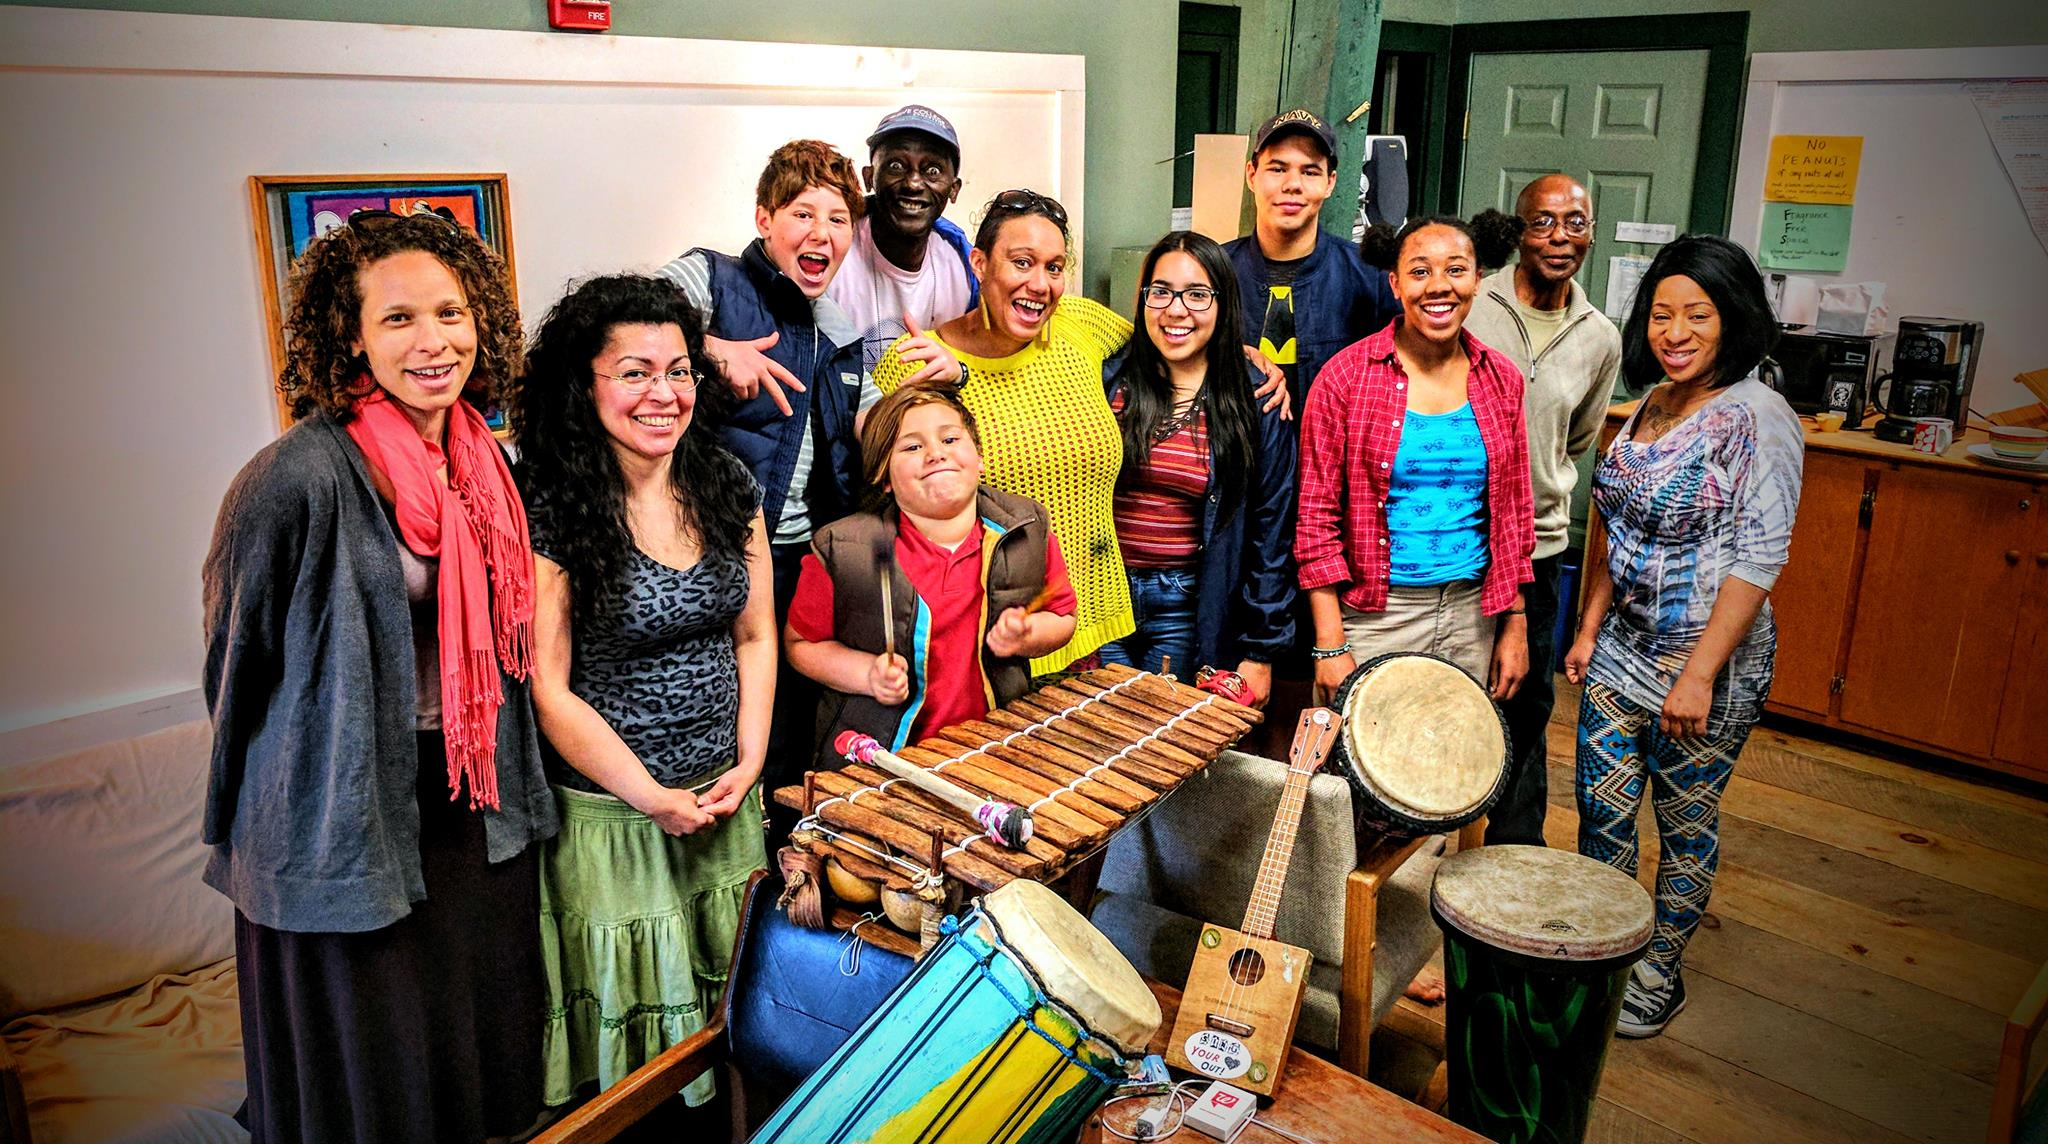 Group of participants gathered in front of a xylophone